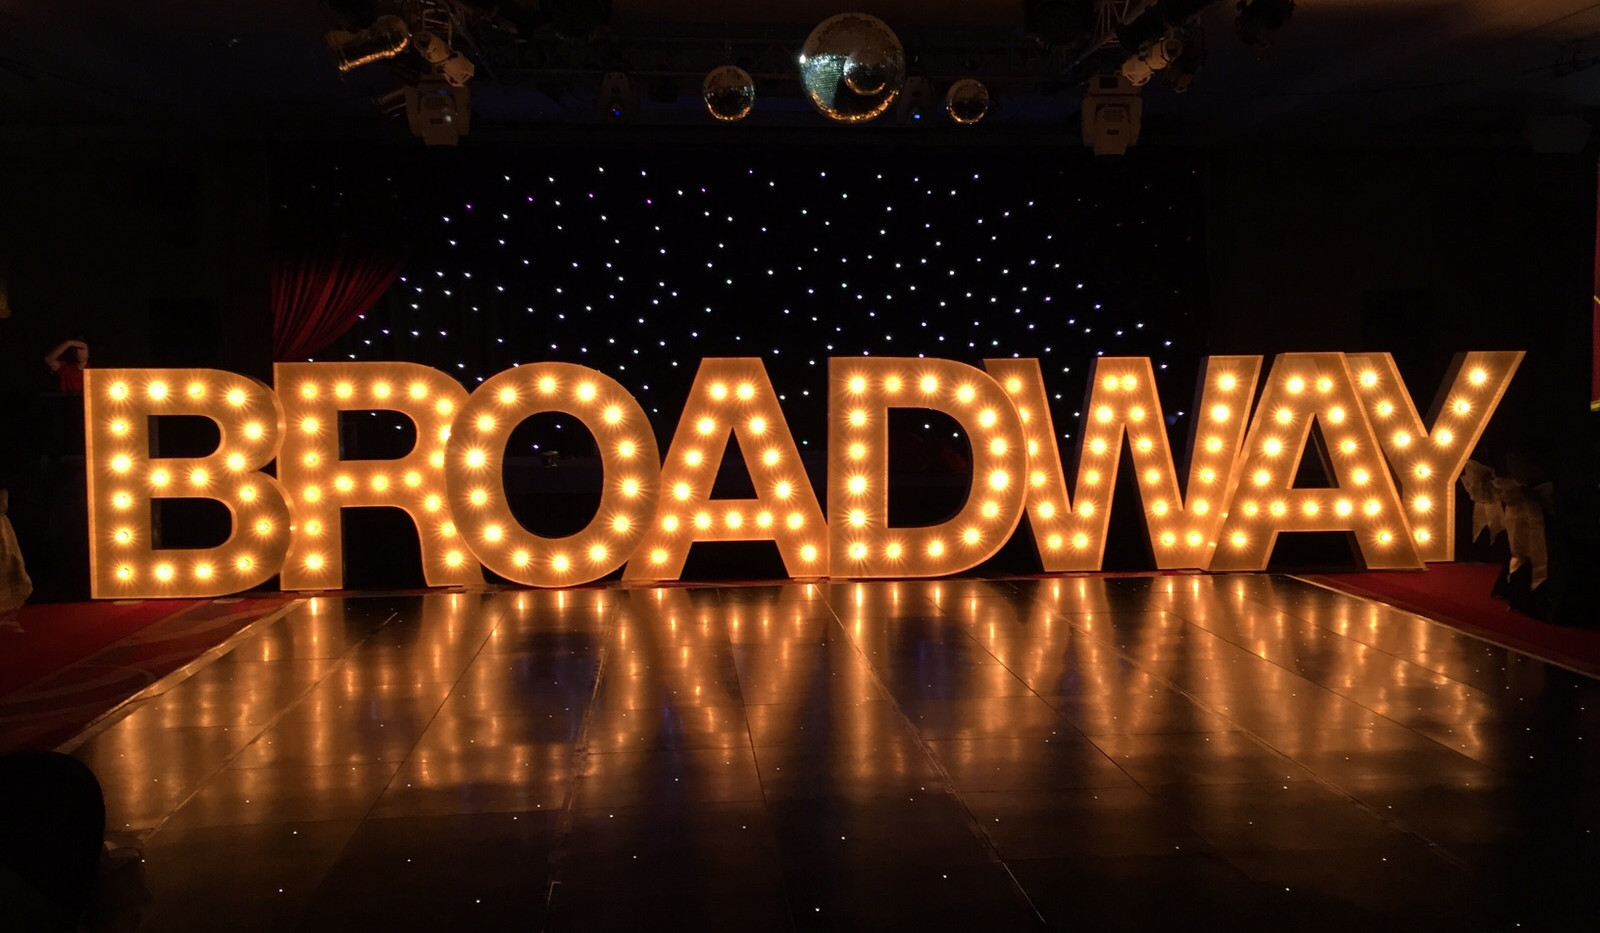 5ft Illuminated light up BROADWAY letters